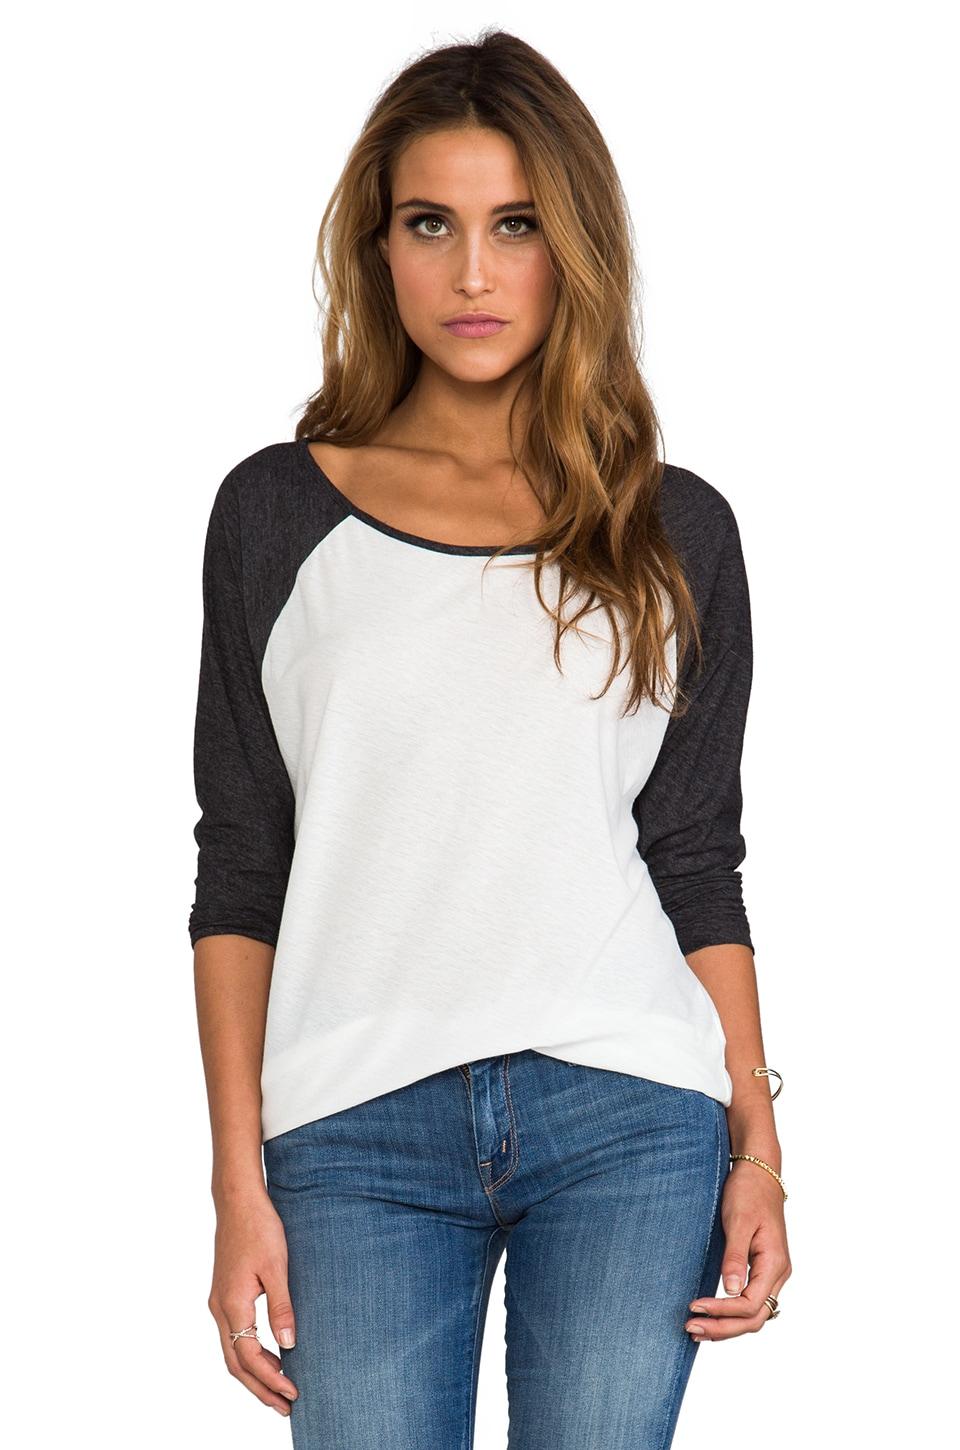 RVCA Label Ziggy Top in Natural/Black